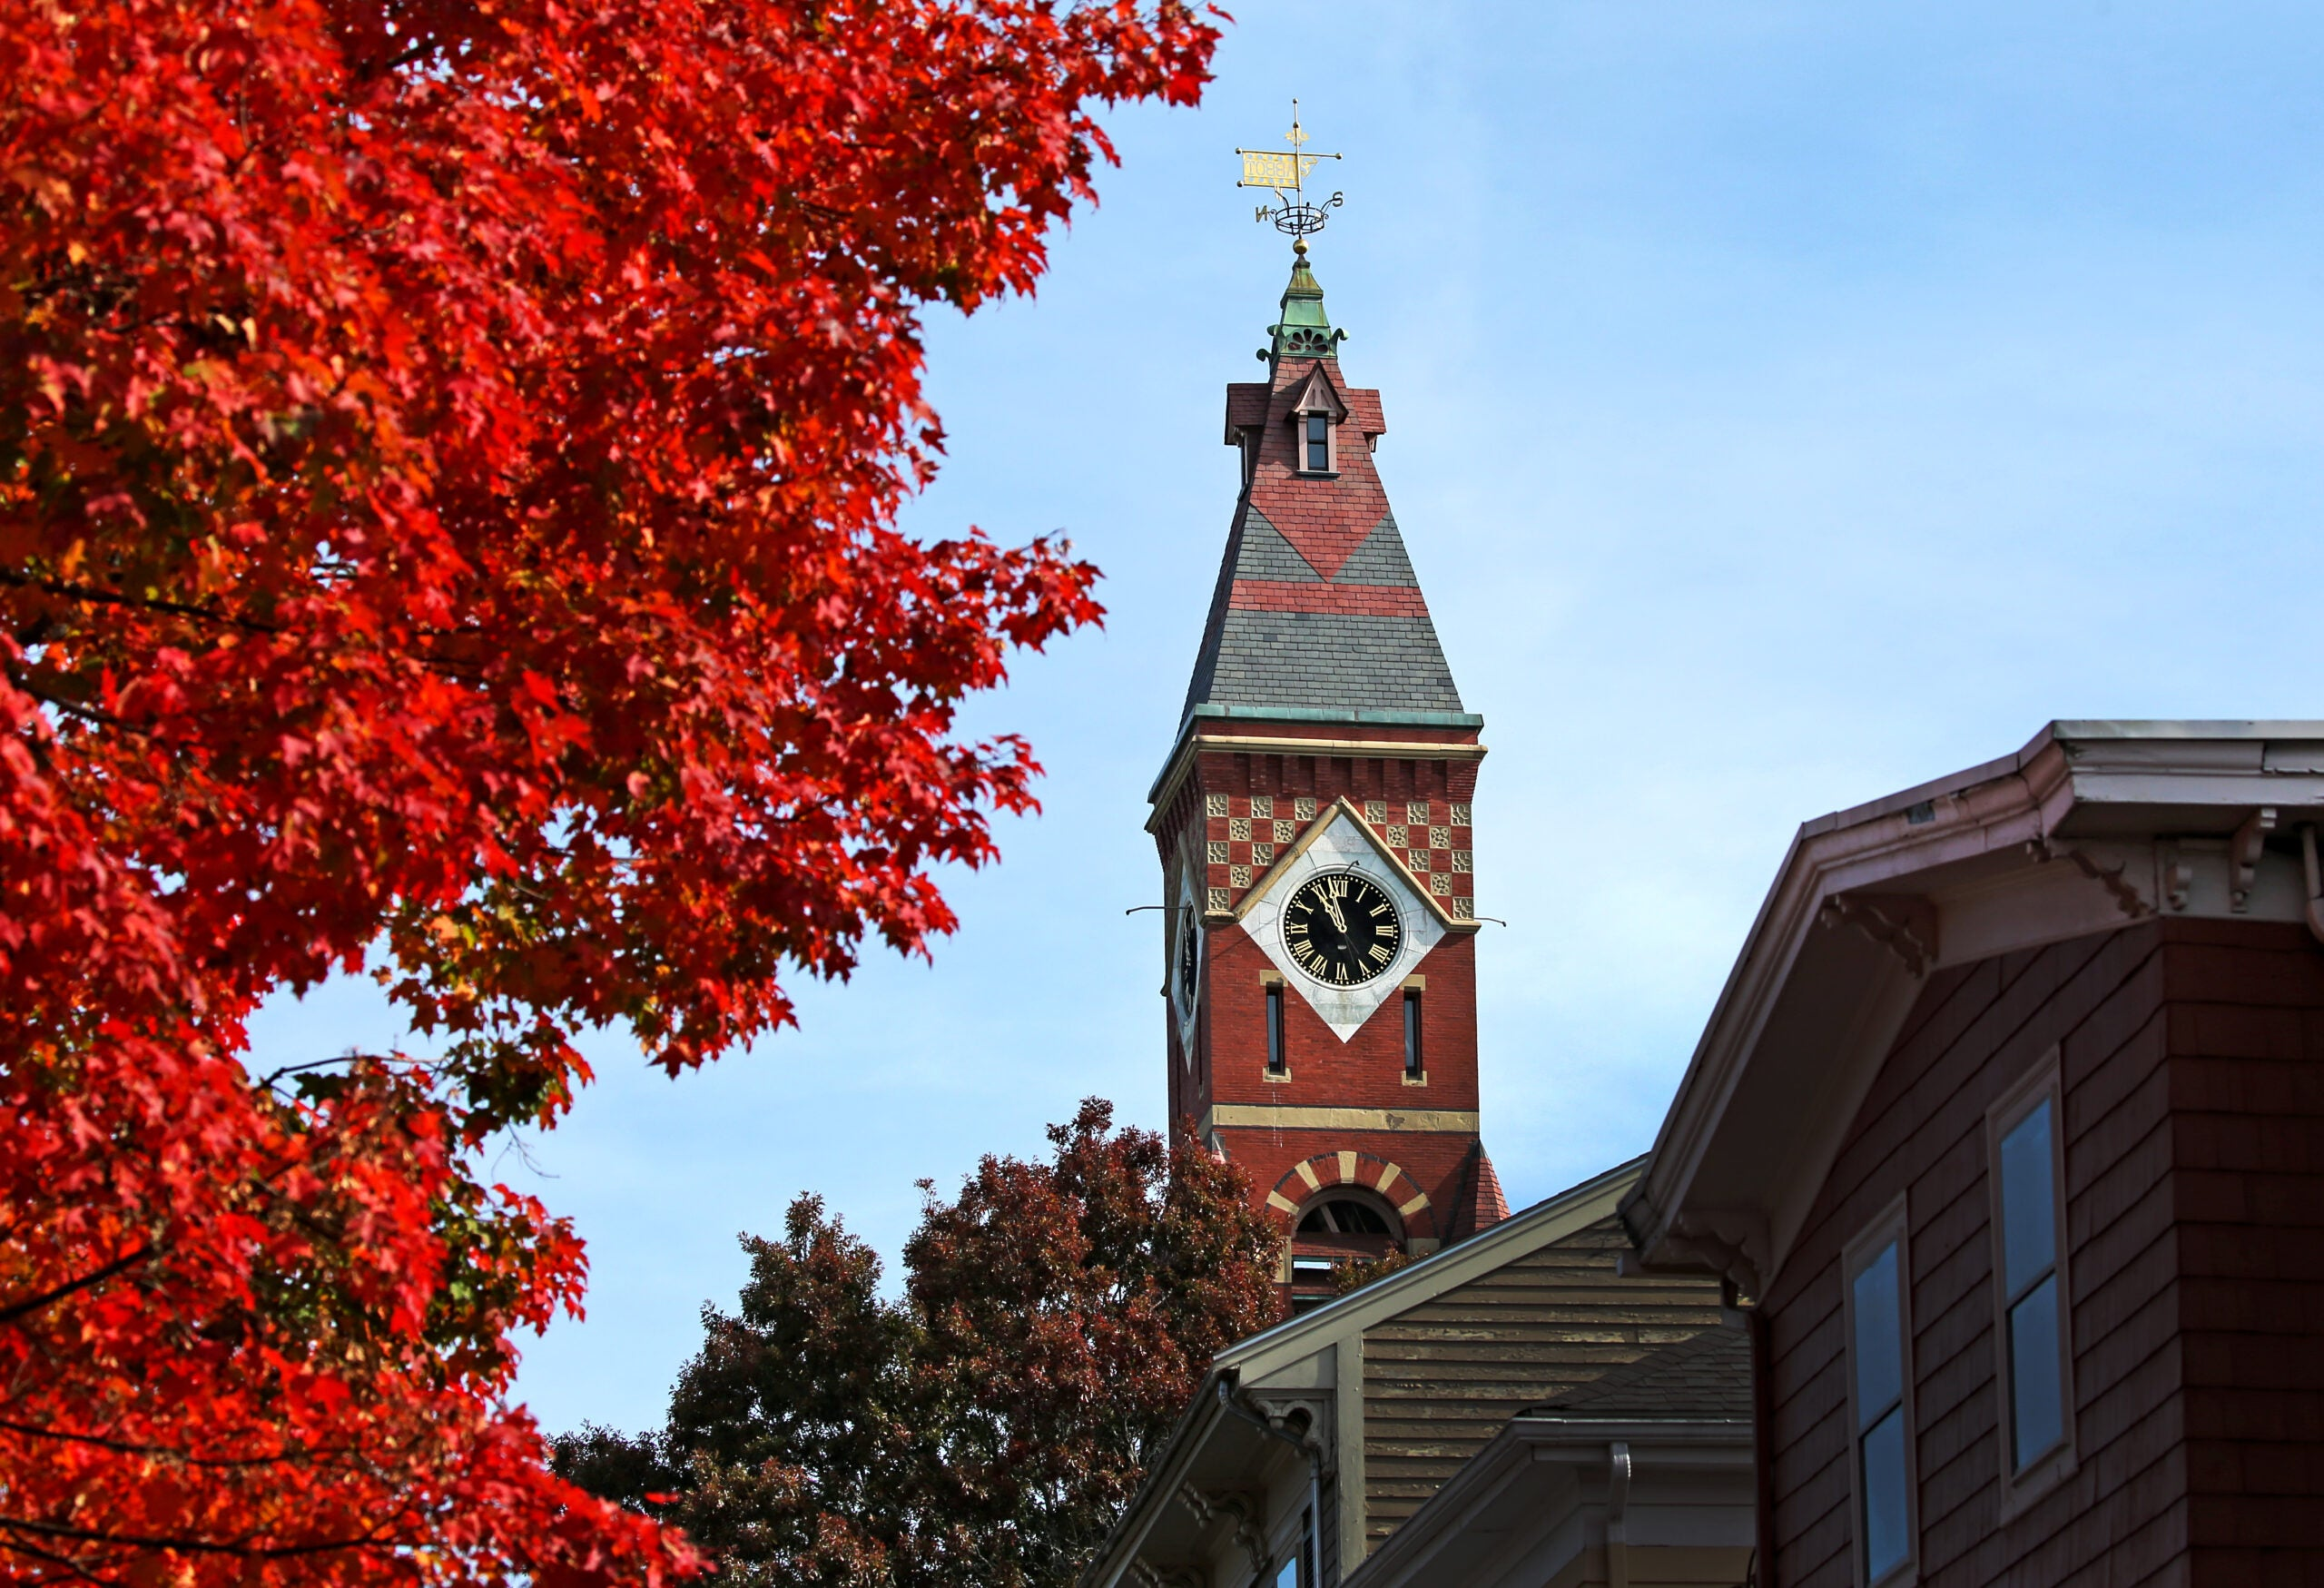 The clock face at Abbot Hall, Marblehead.